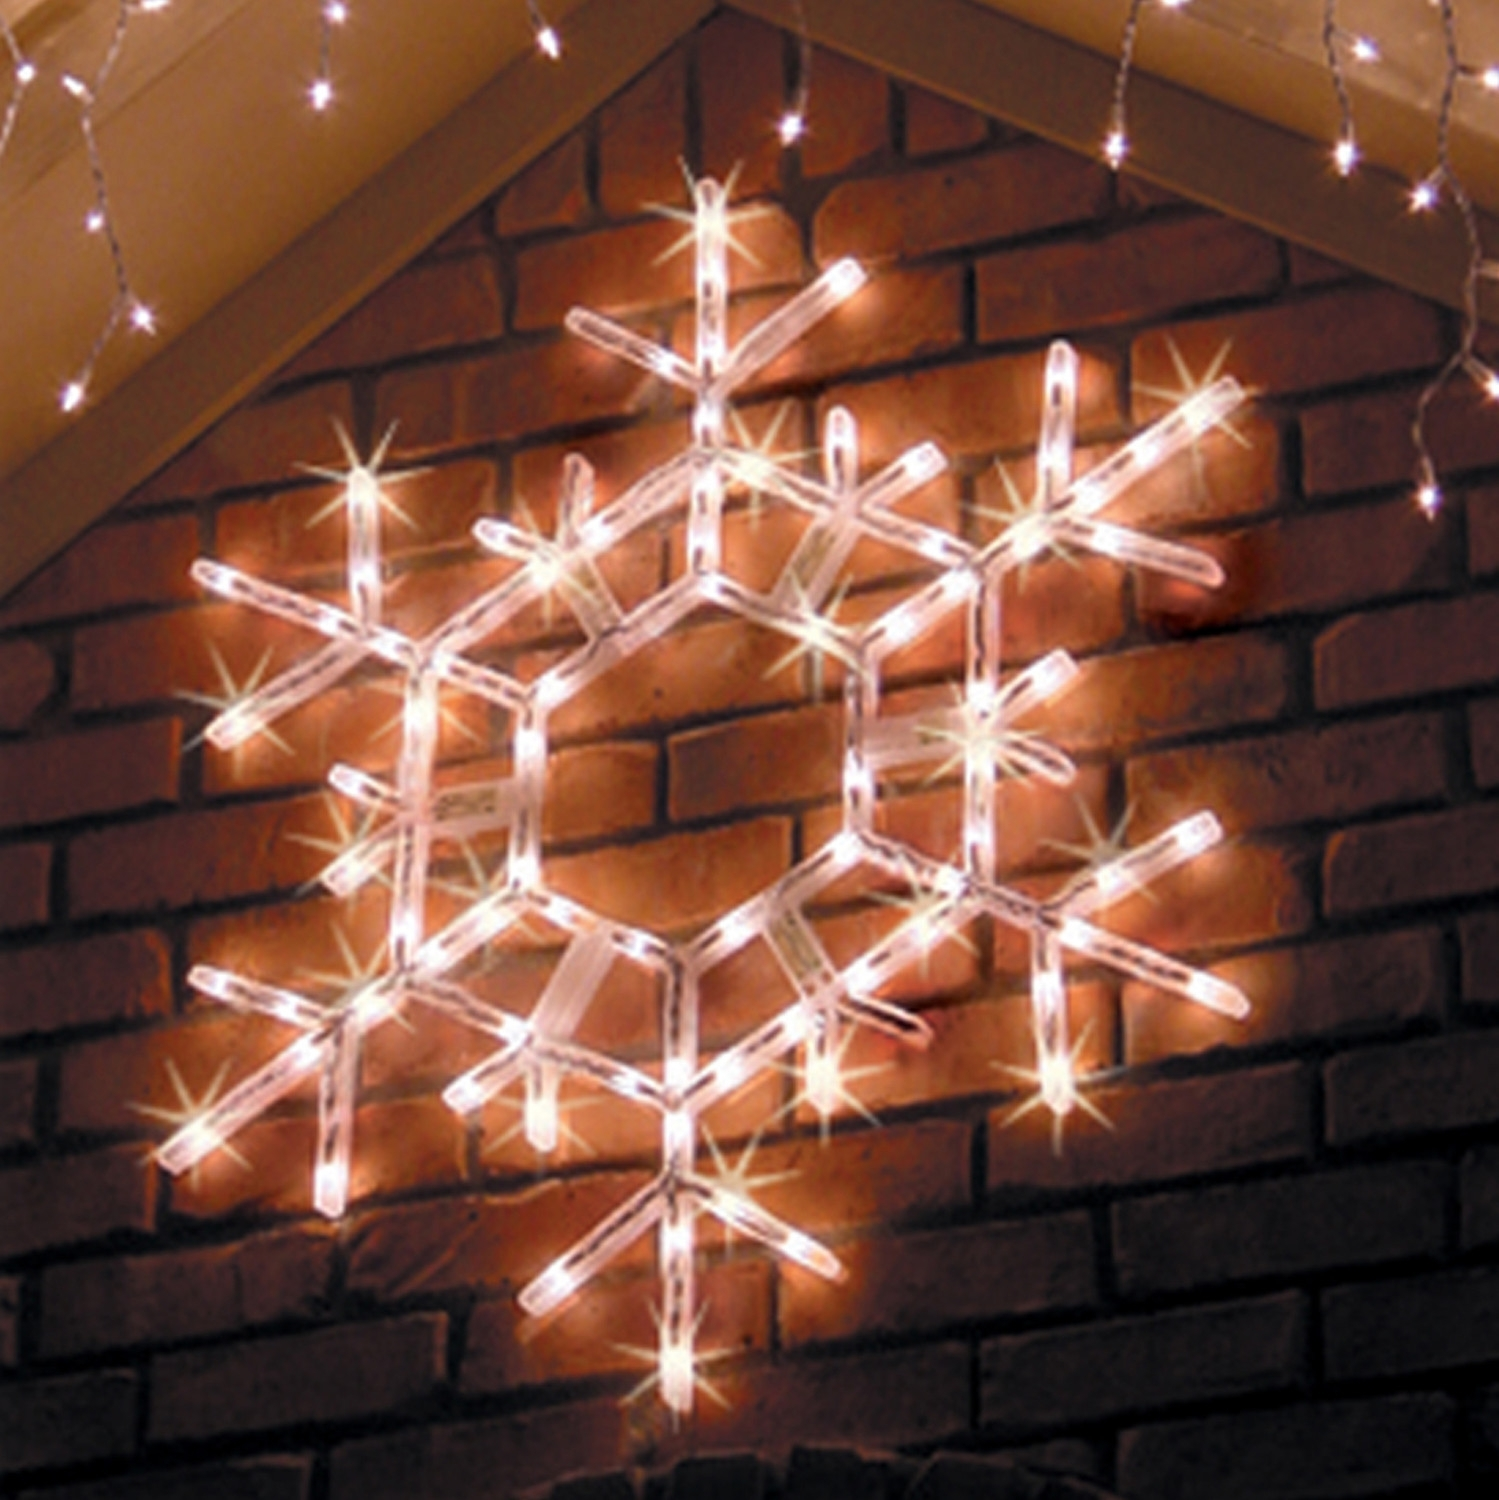 Lighted Outdoor Yard Decorations | Yard Decorations, Snowflake For Outdoor Wall Xmas Lights (#8 of 15)